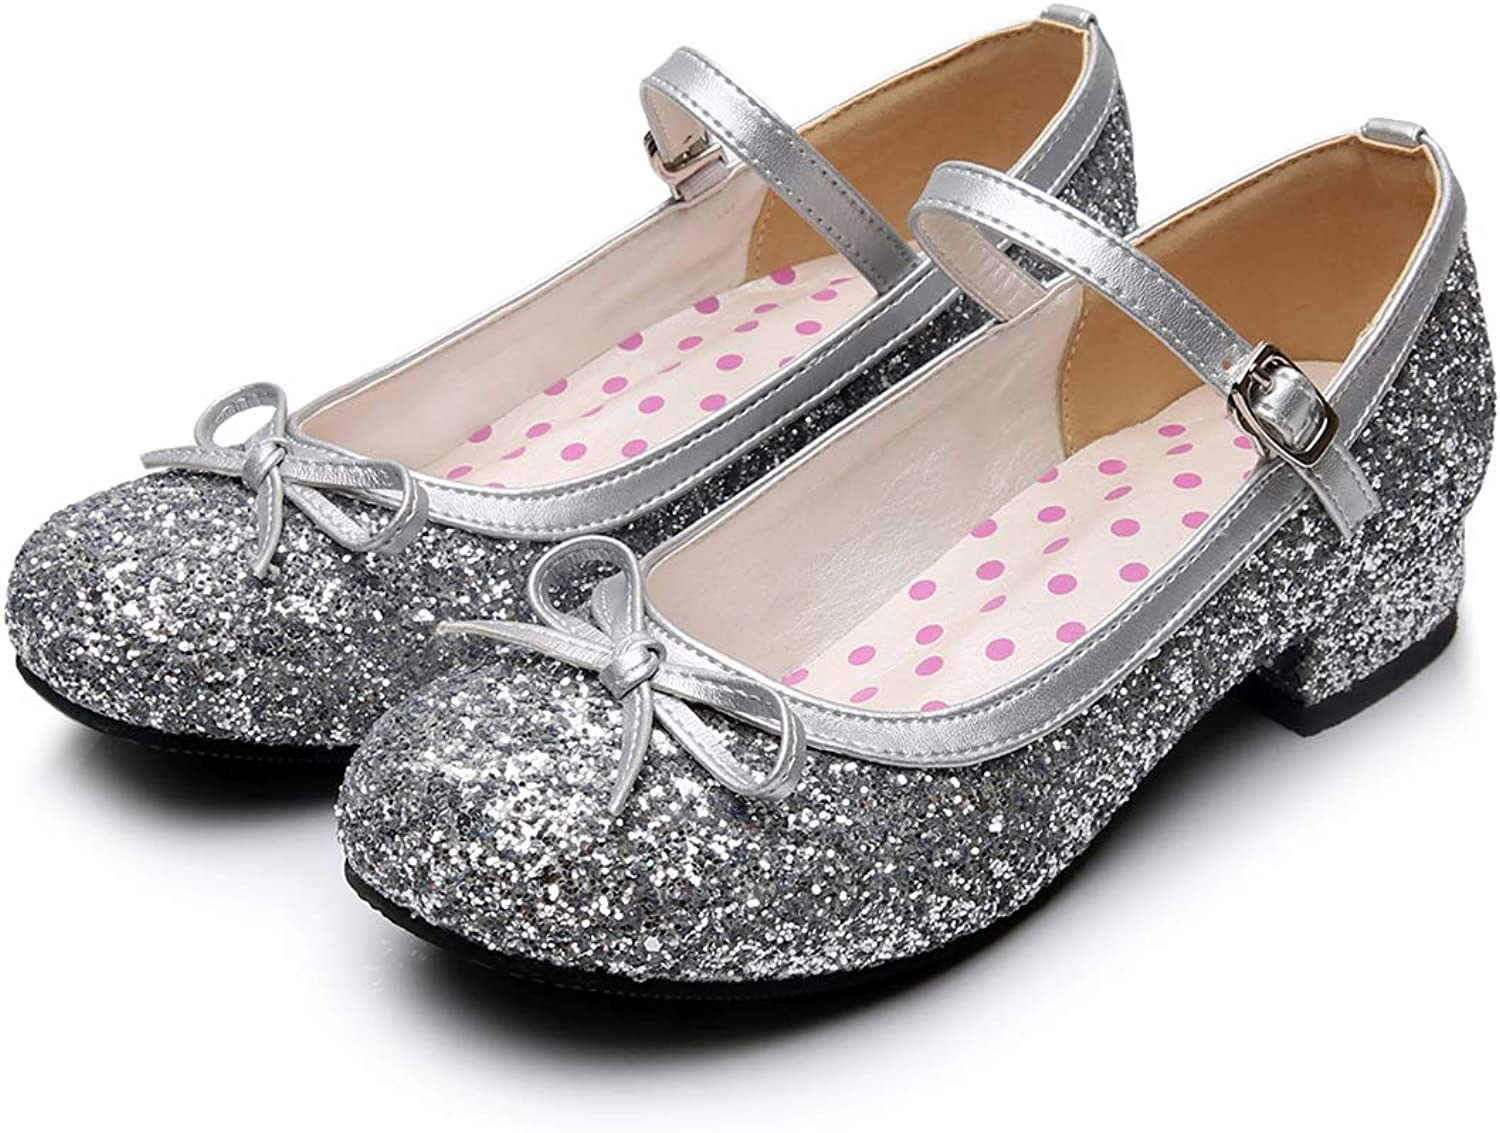 Japanese Sweet Lolita shoes Round Toe Low Heel Shiny gold Silver Mary Jane Party shoes